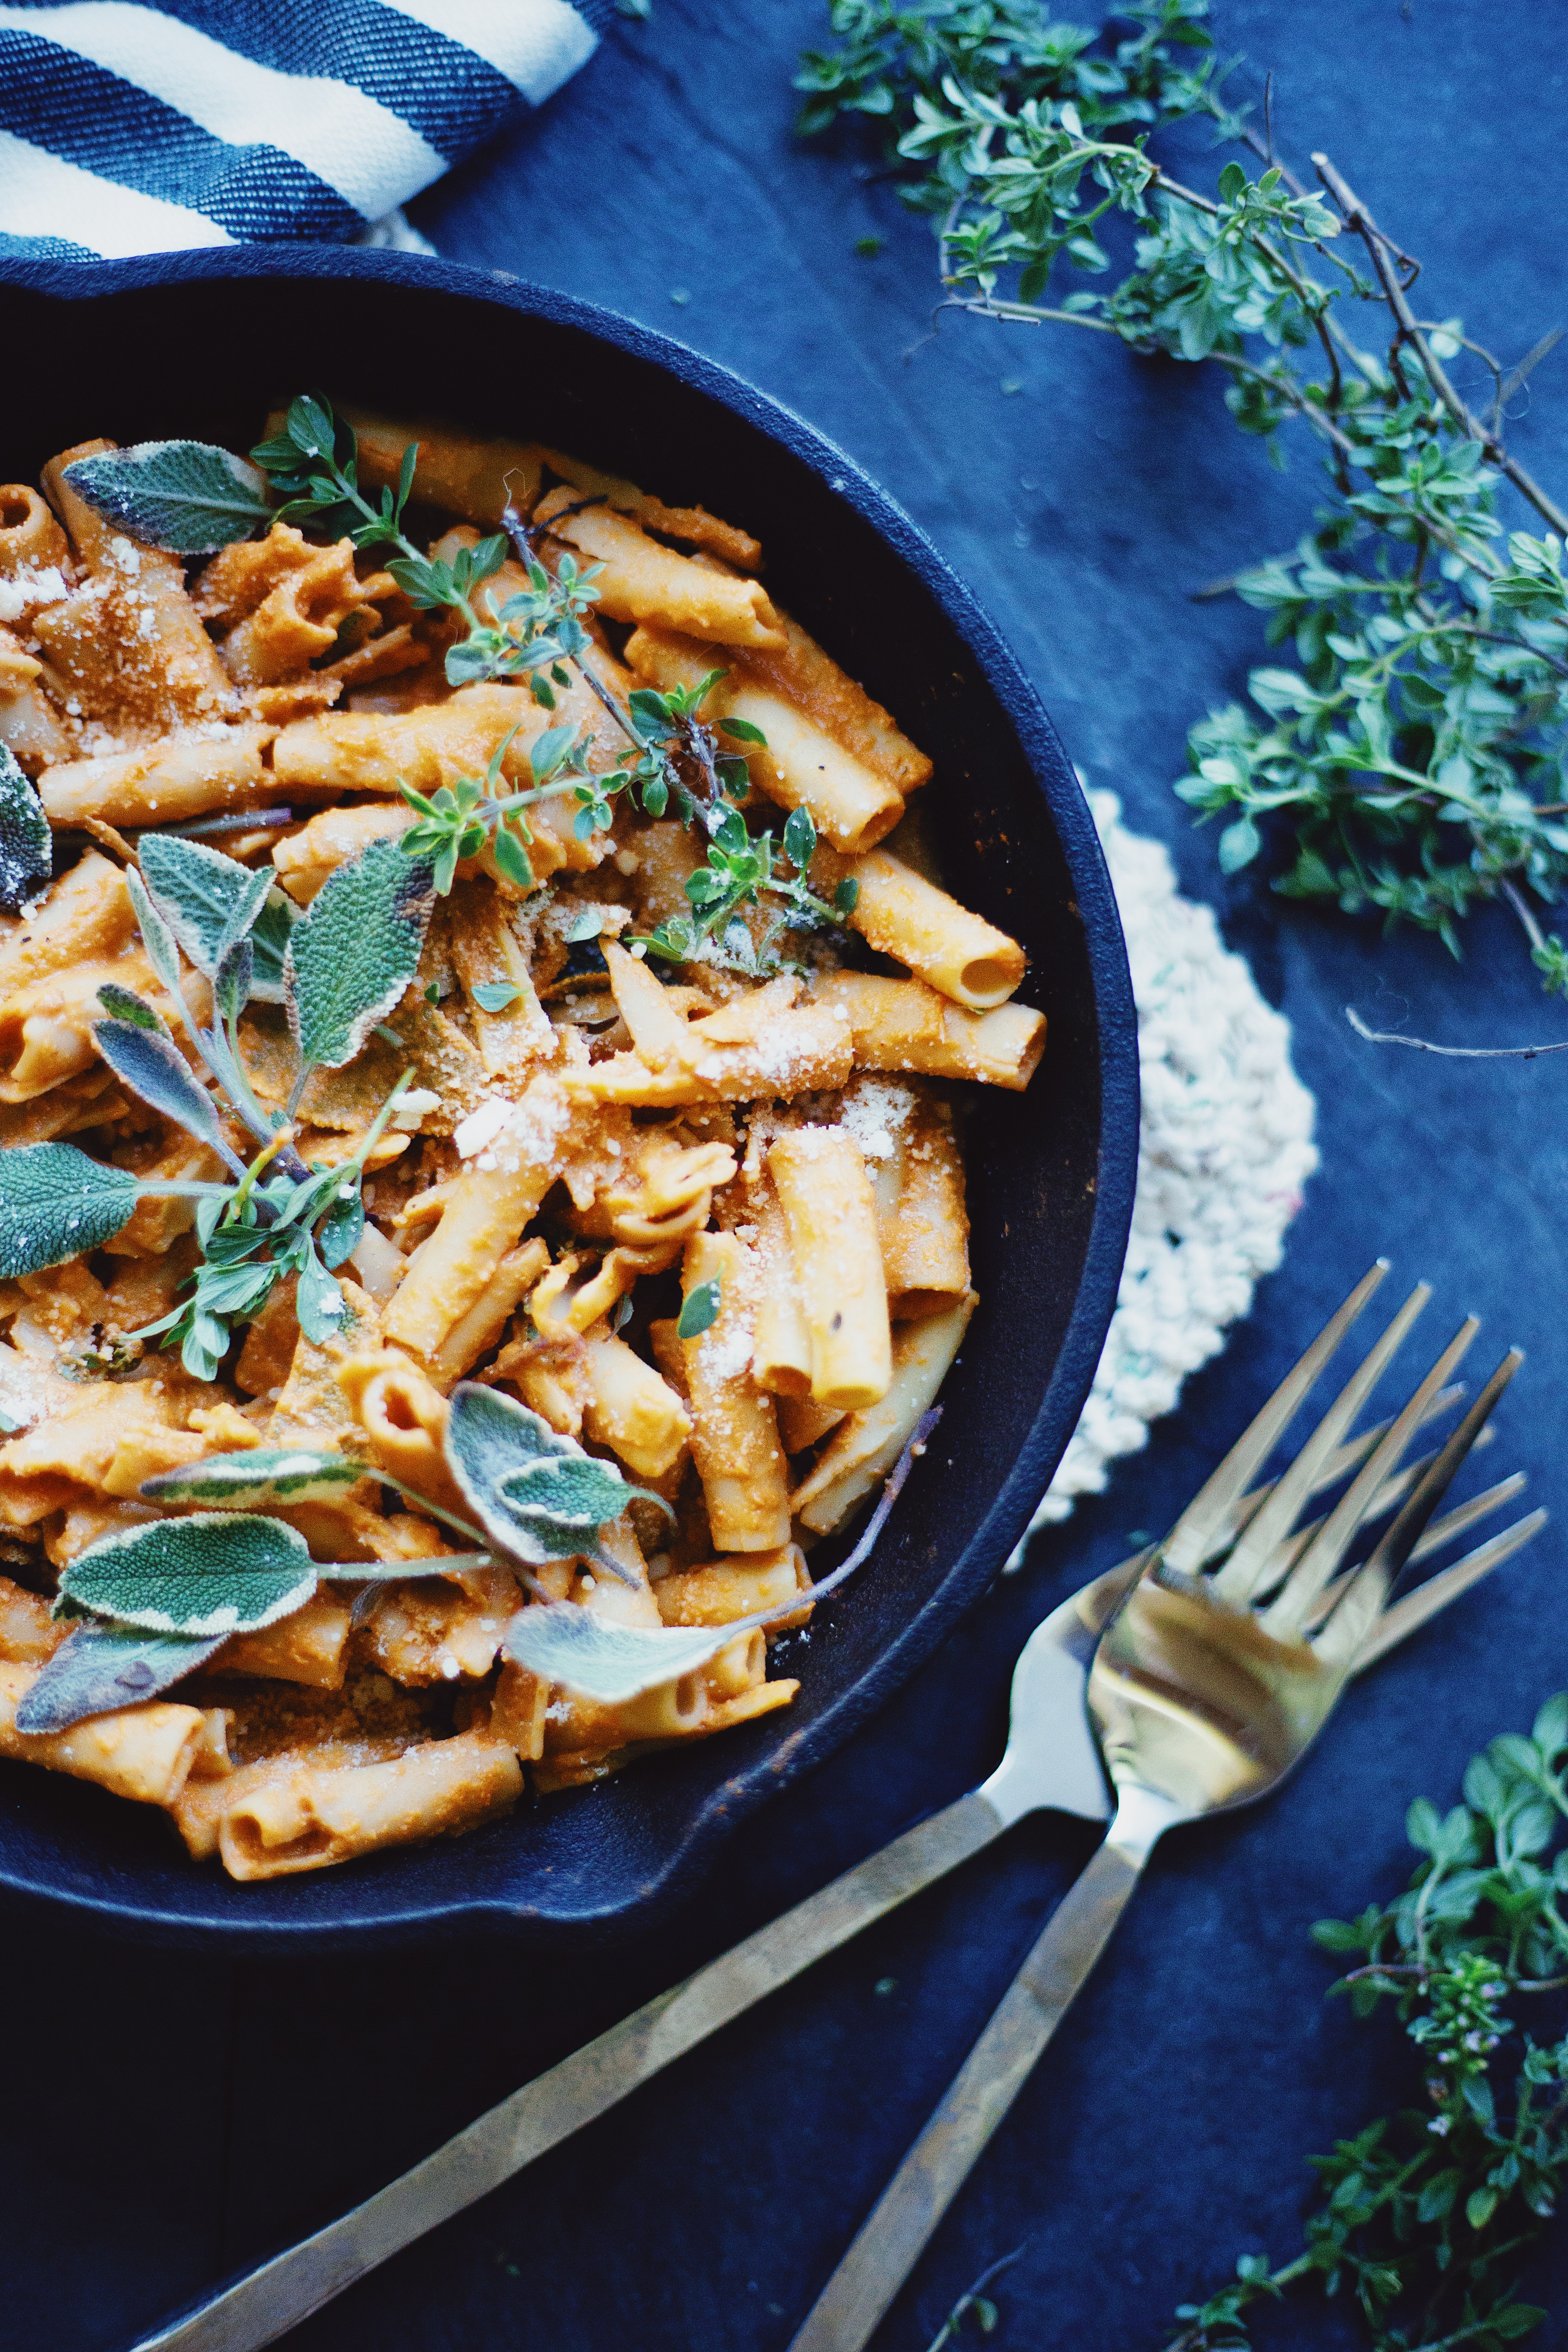 Vegan pasta recipe with roasted red pepper sauce.